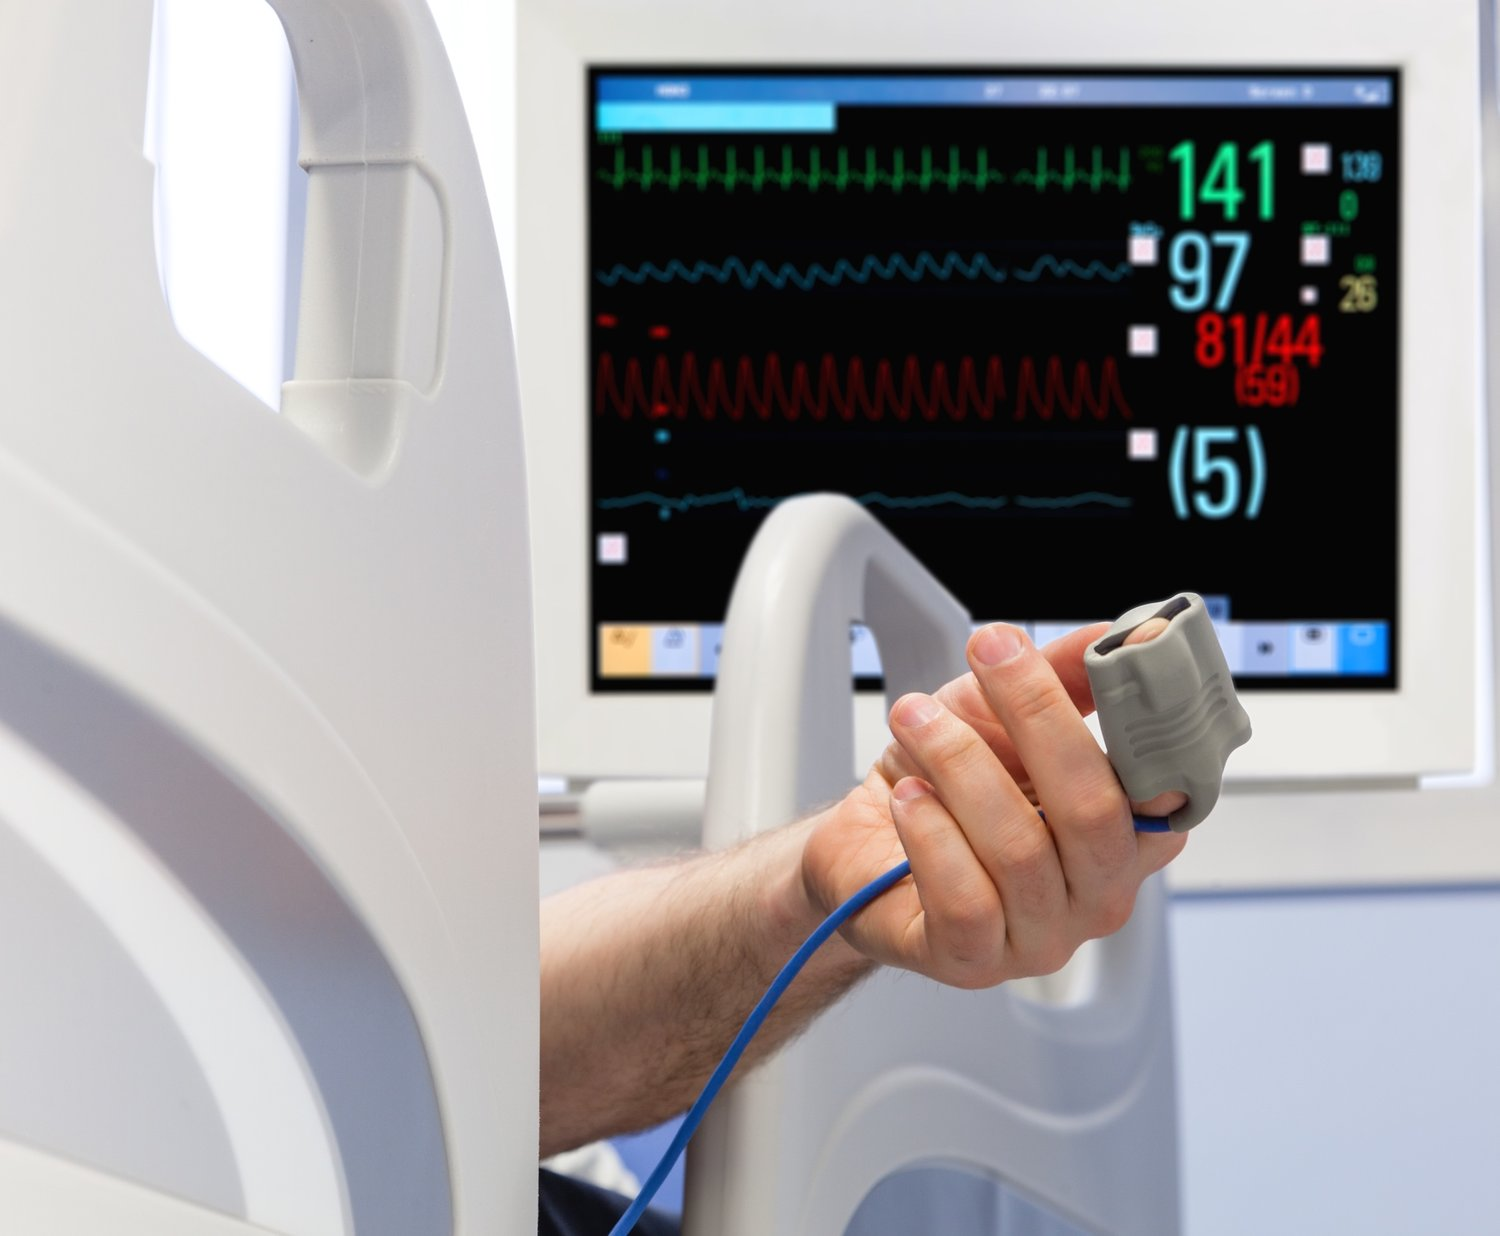 Medical Telemetry Market 2019 Expert Guide to Boost the Industry in Global Share